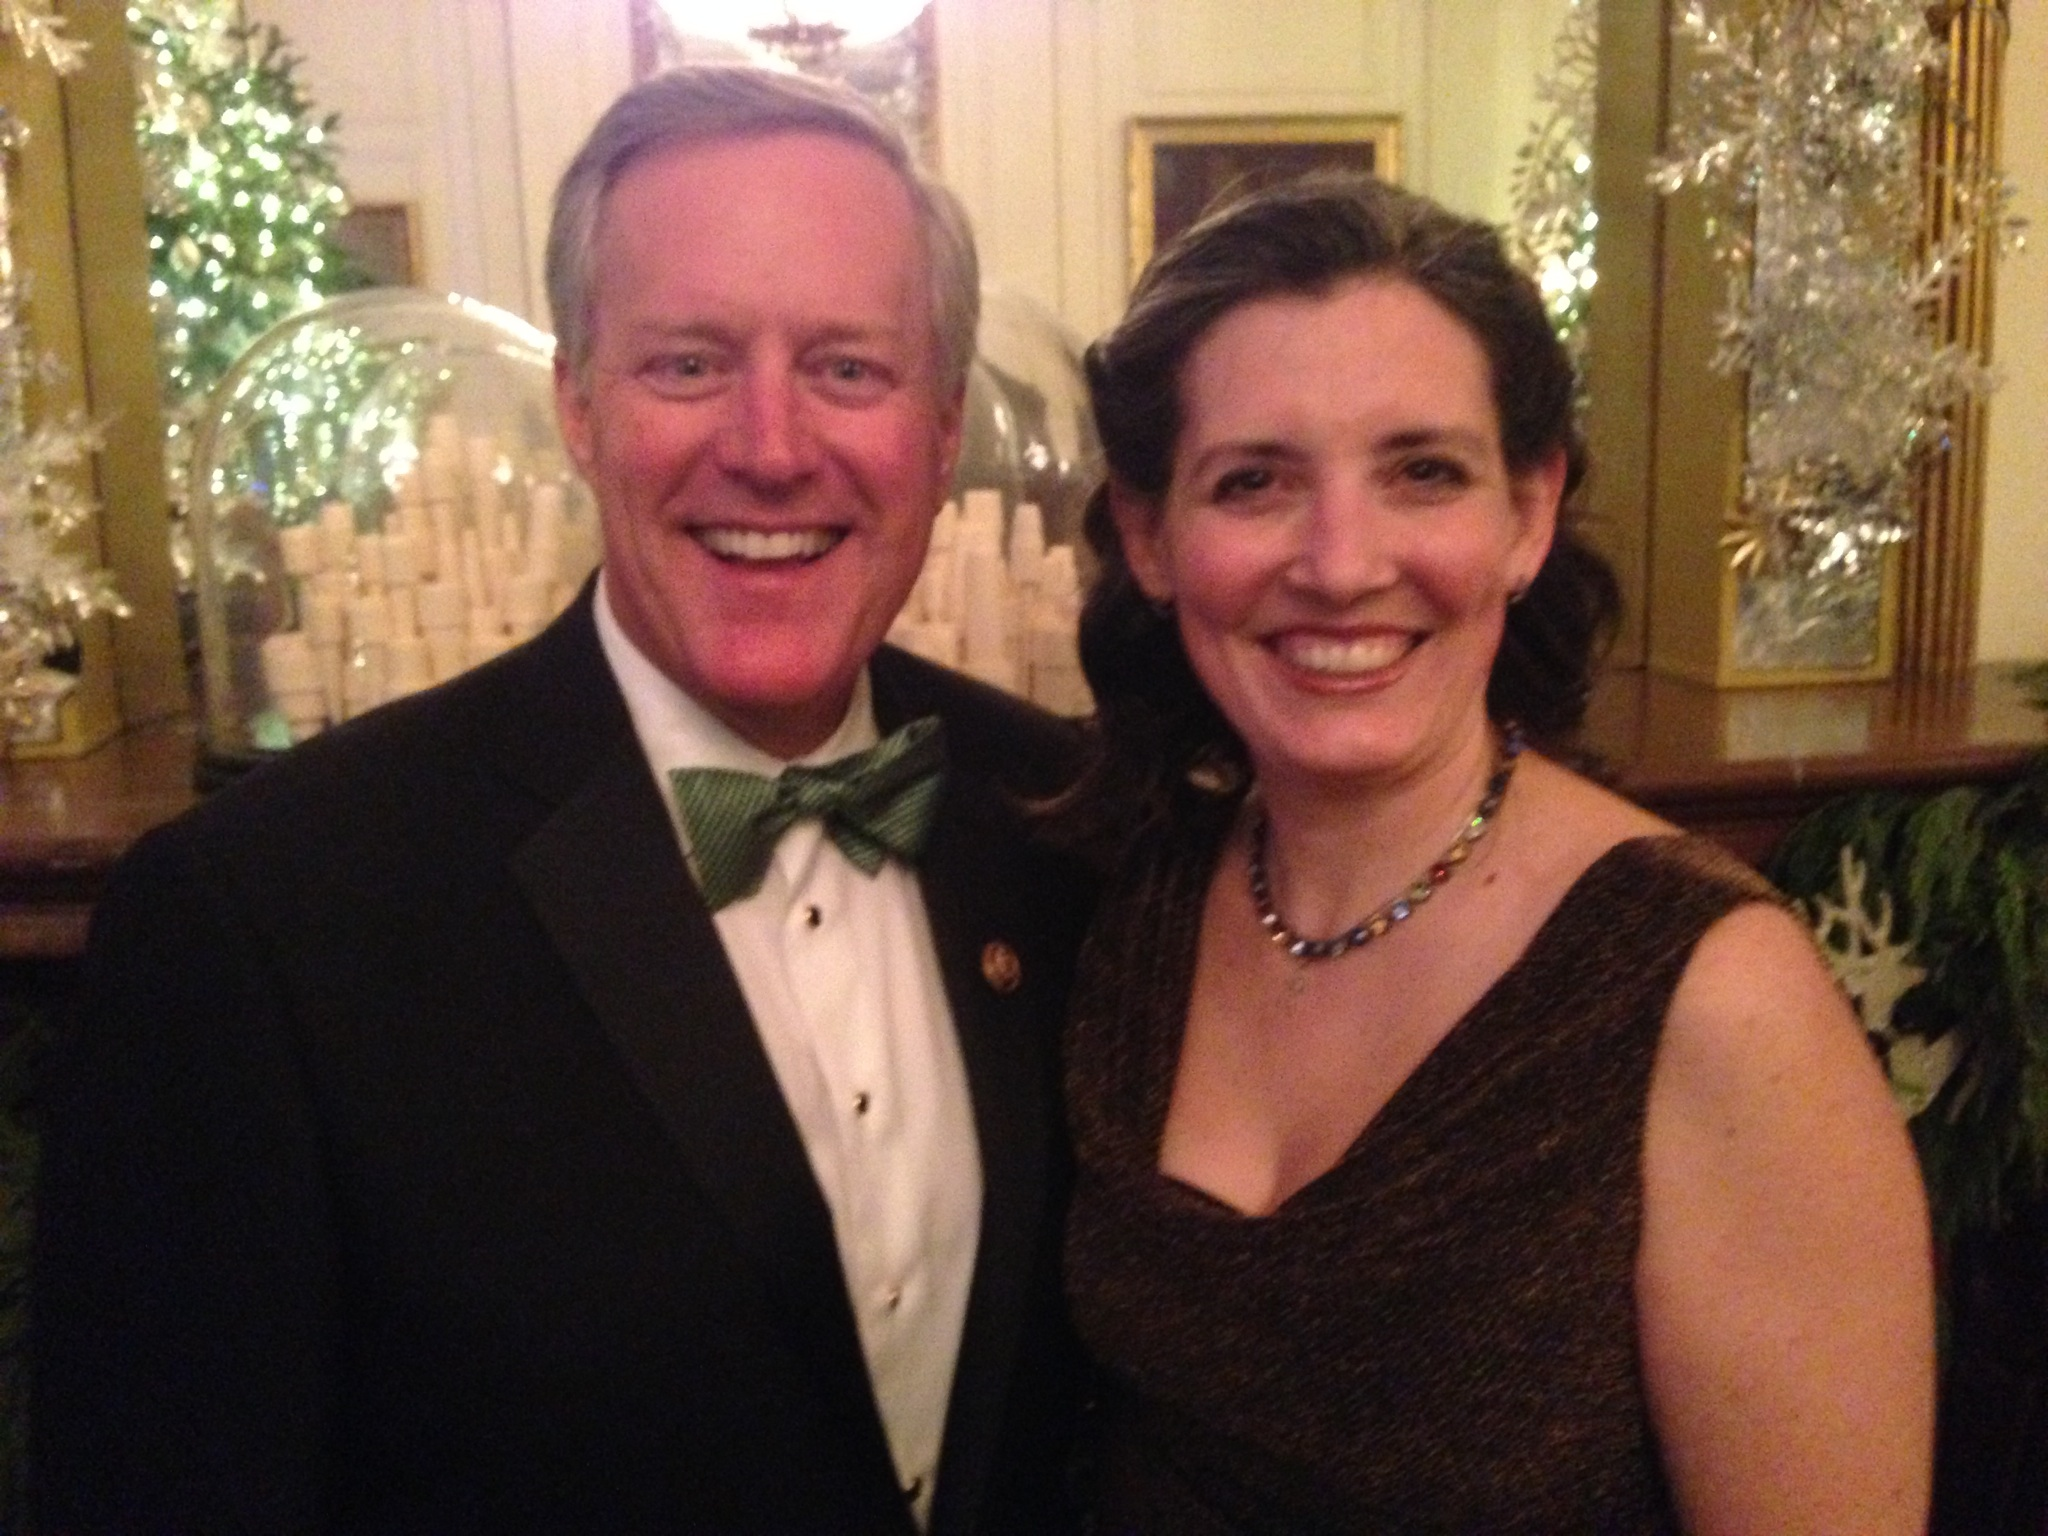 With Rep. Mark Meadows